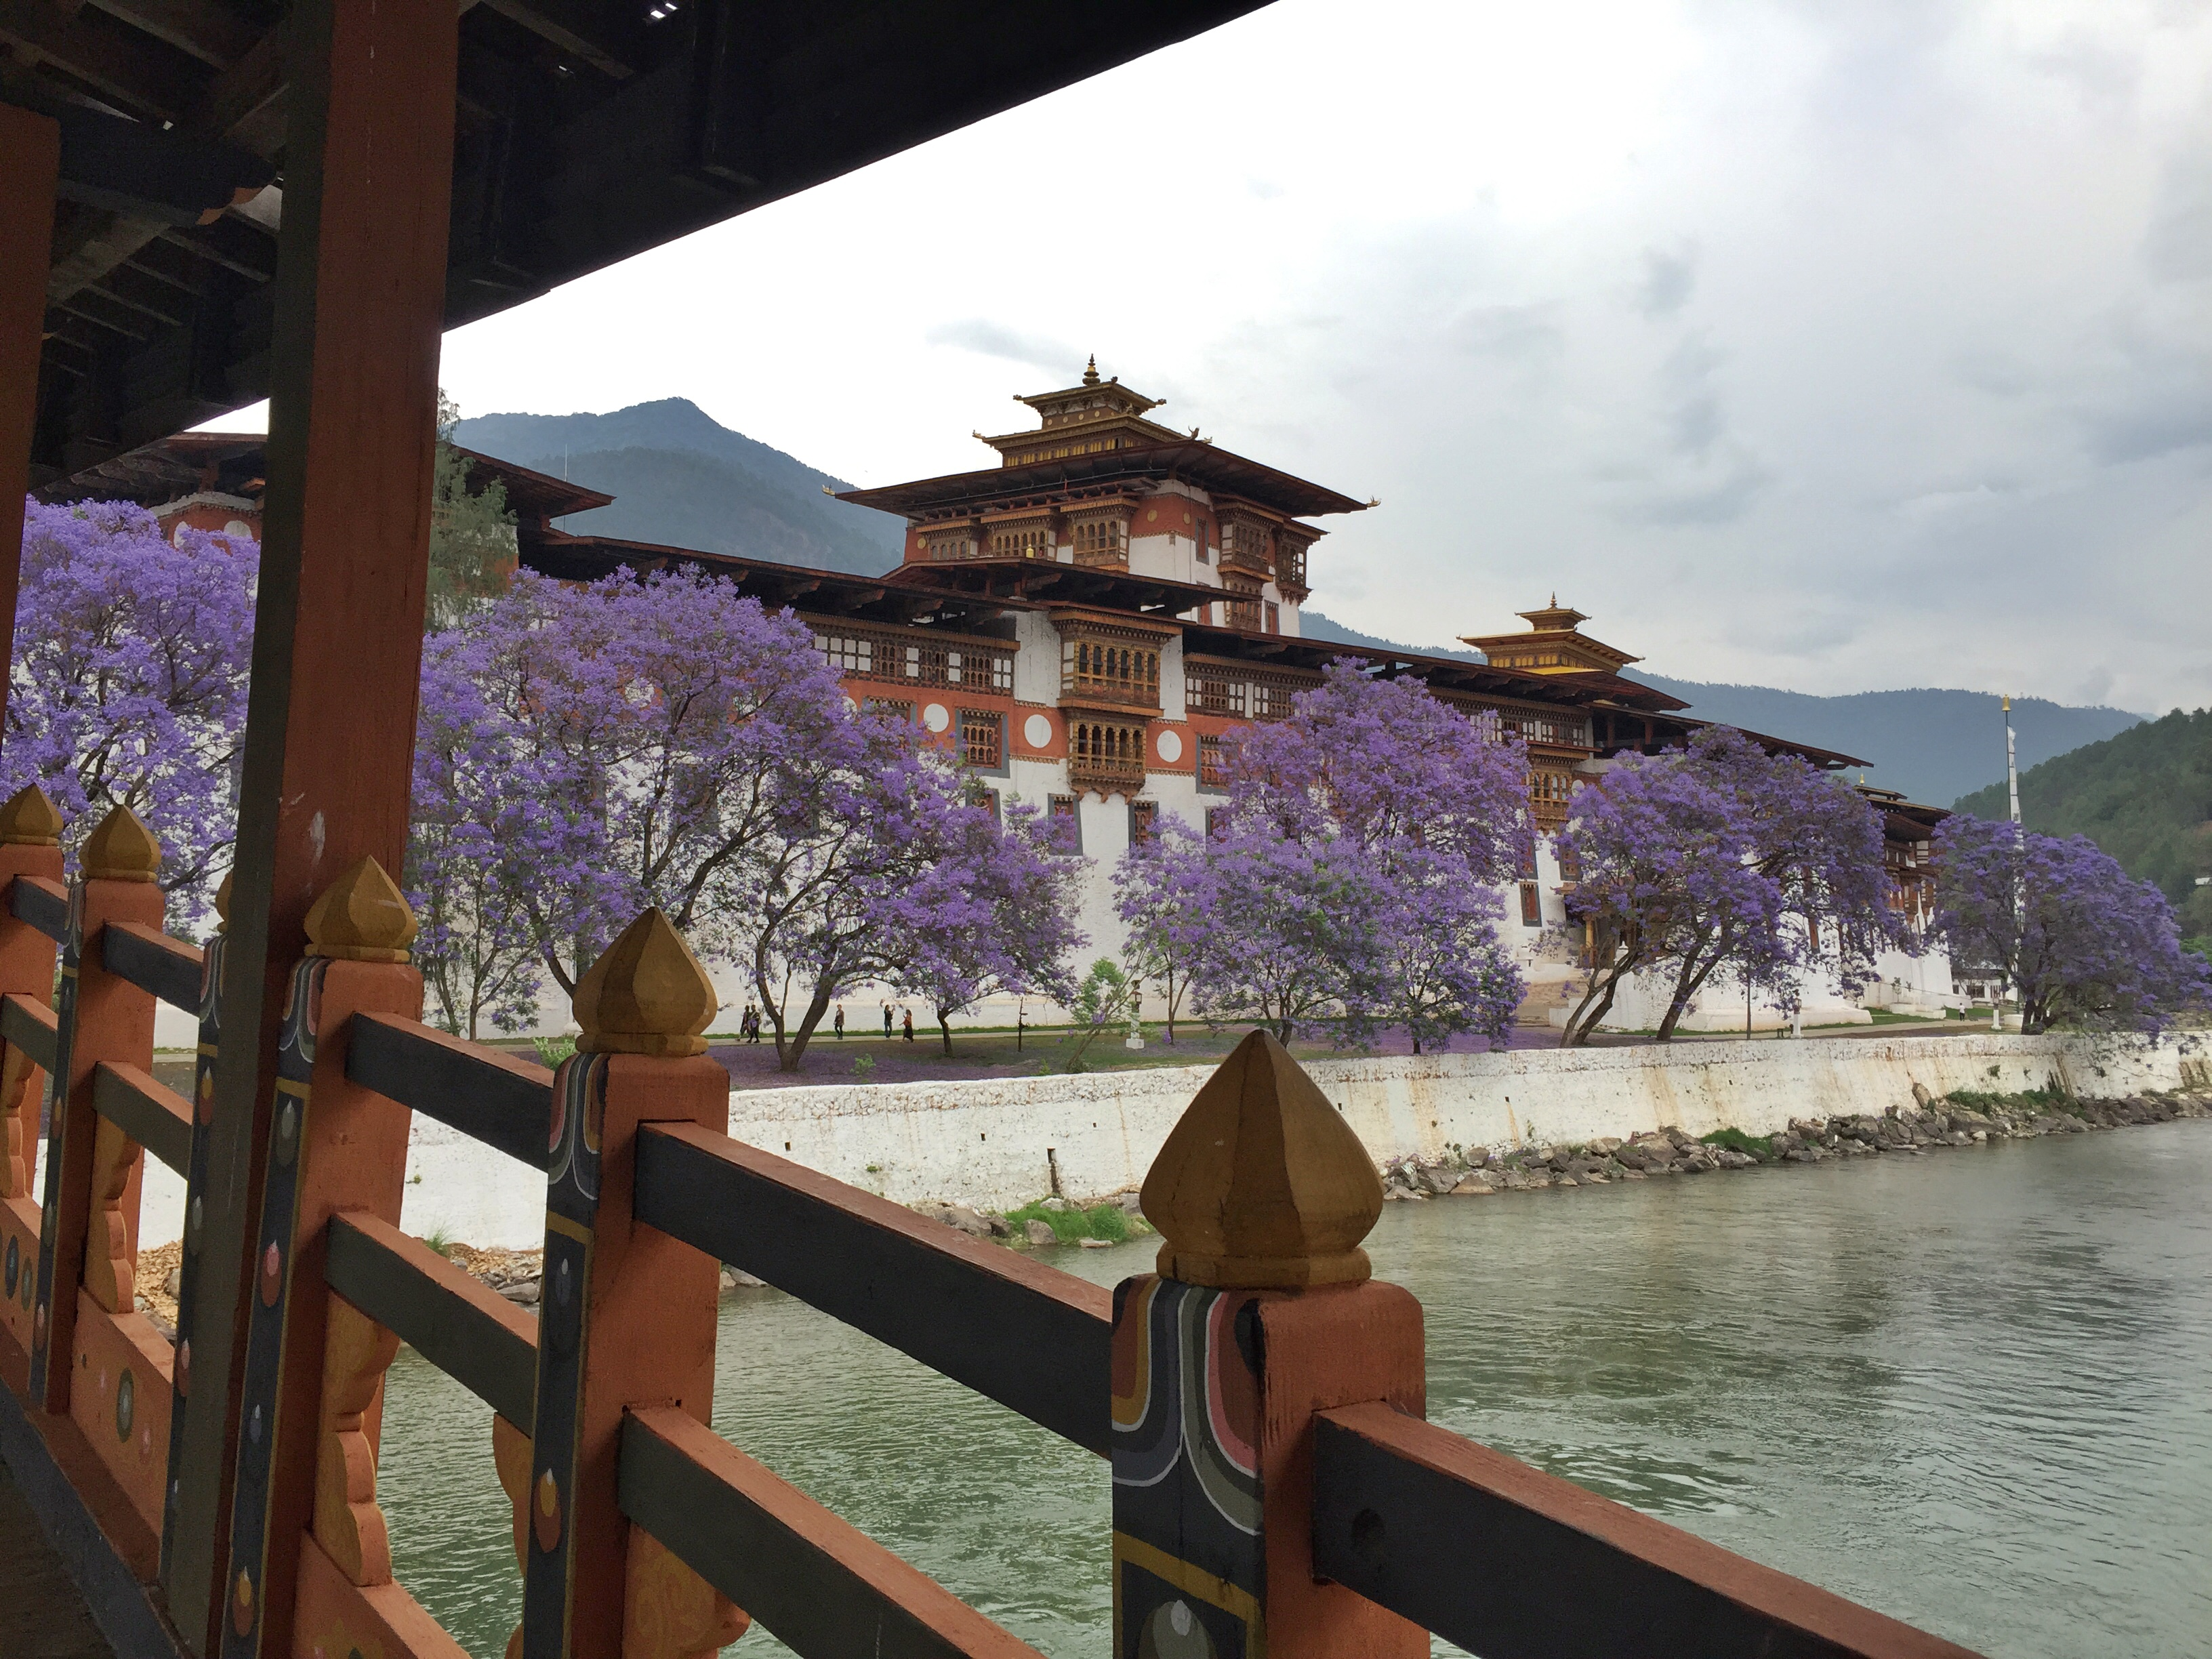 MY 10 REASONS TO VISIT BHUTAN- THE LAND OF THE THUNDER DRAGON